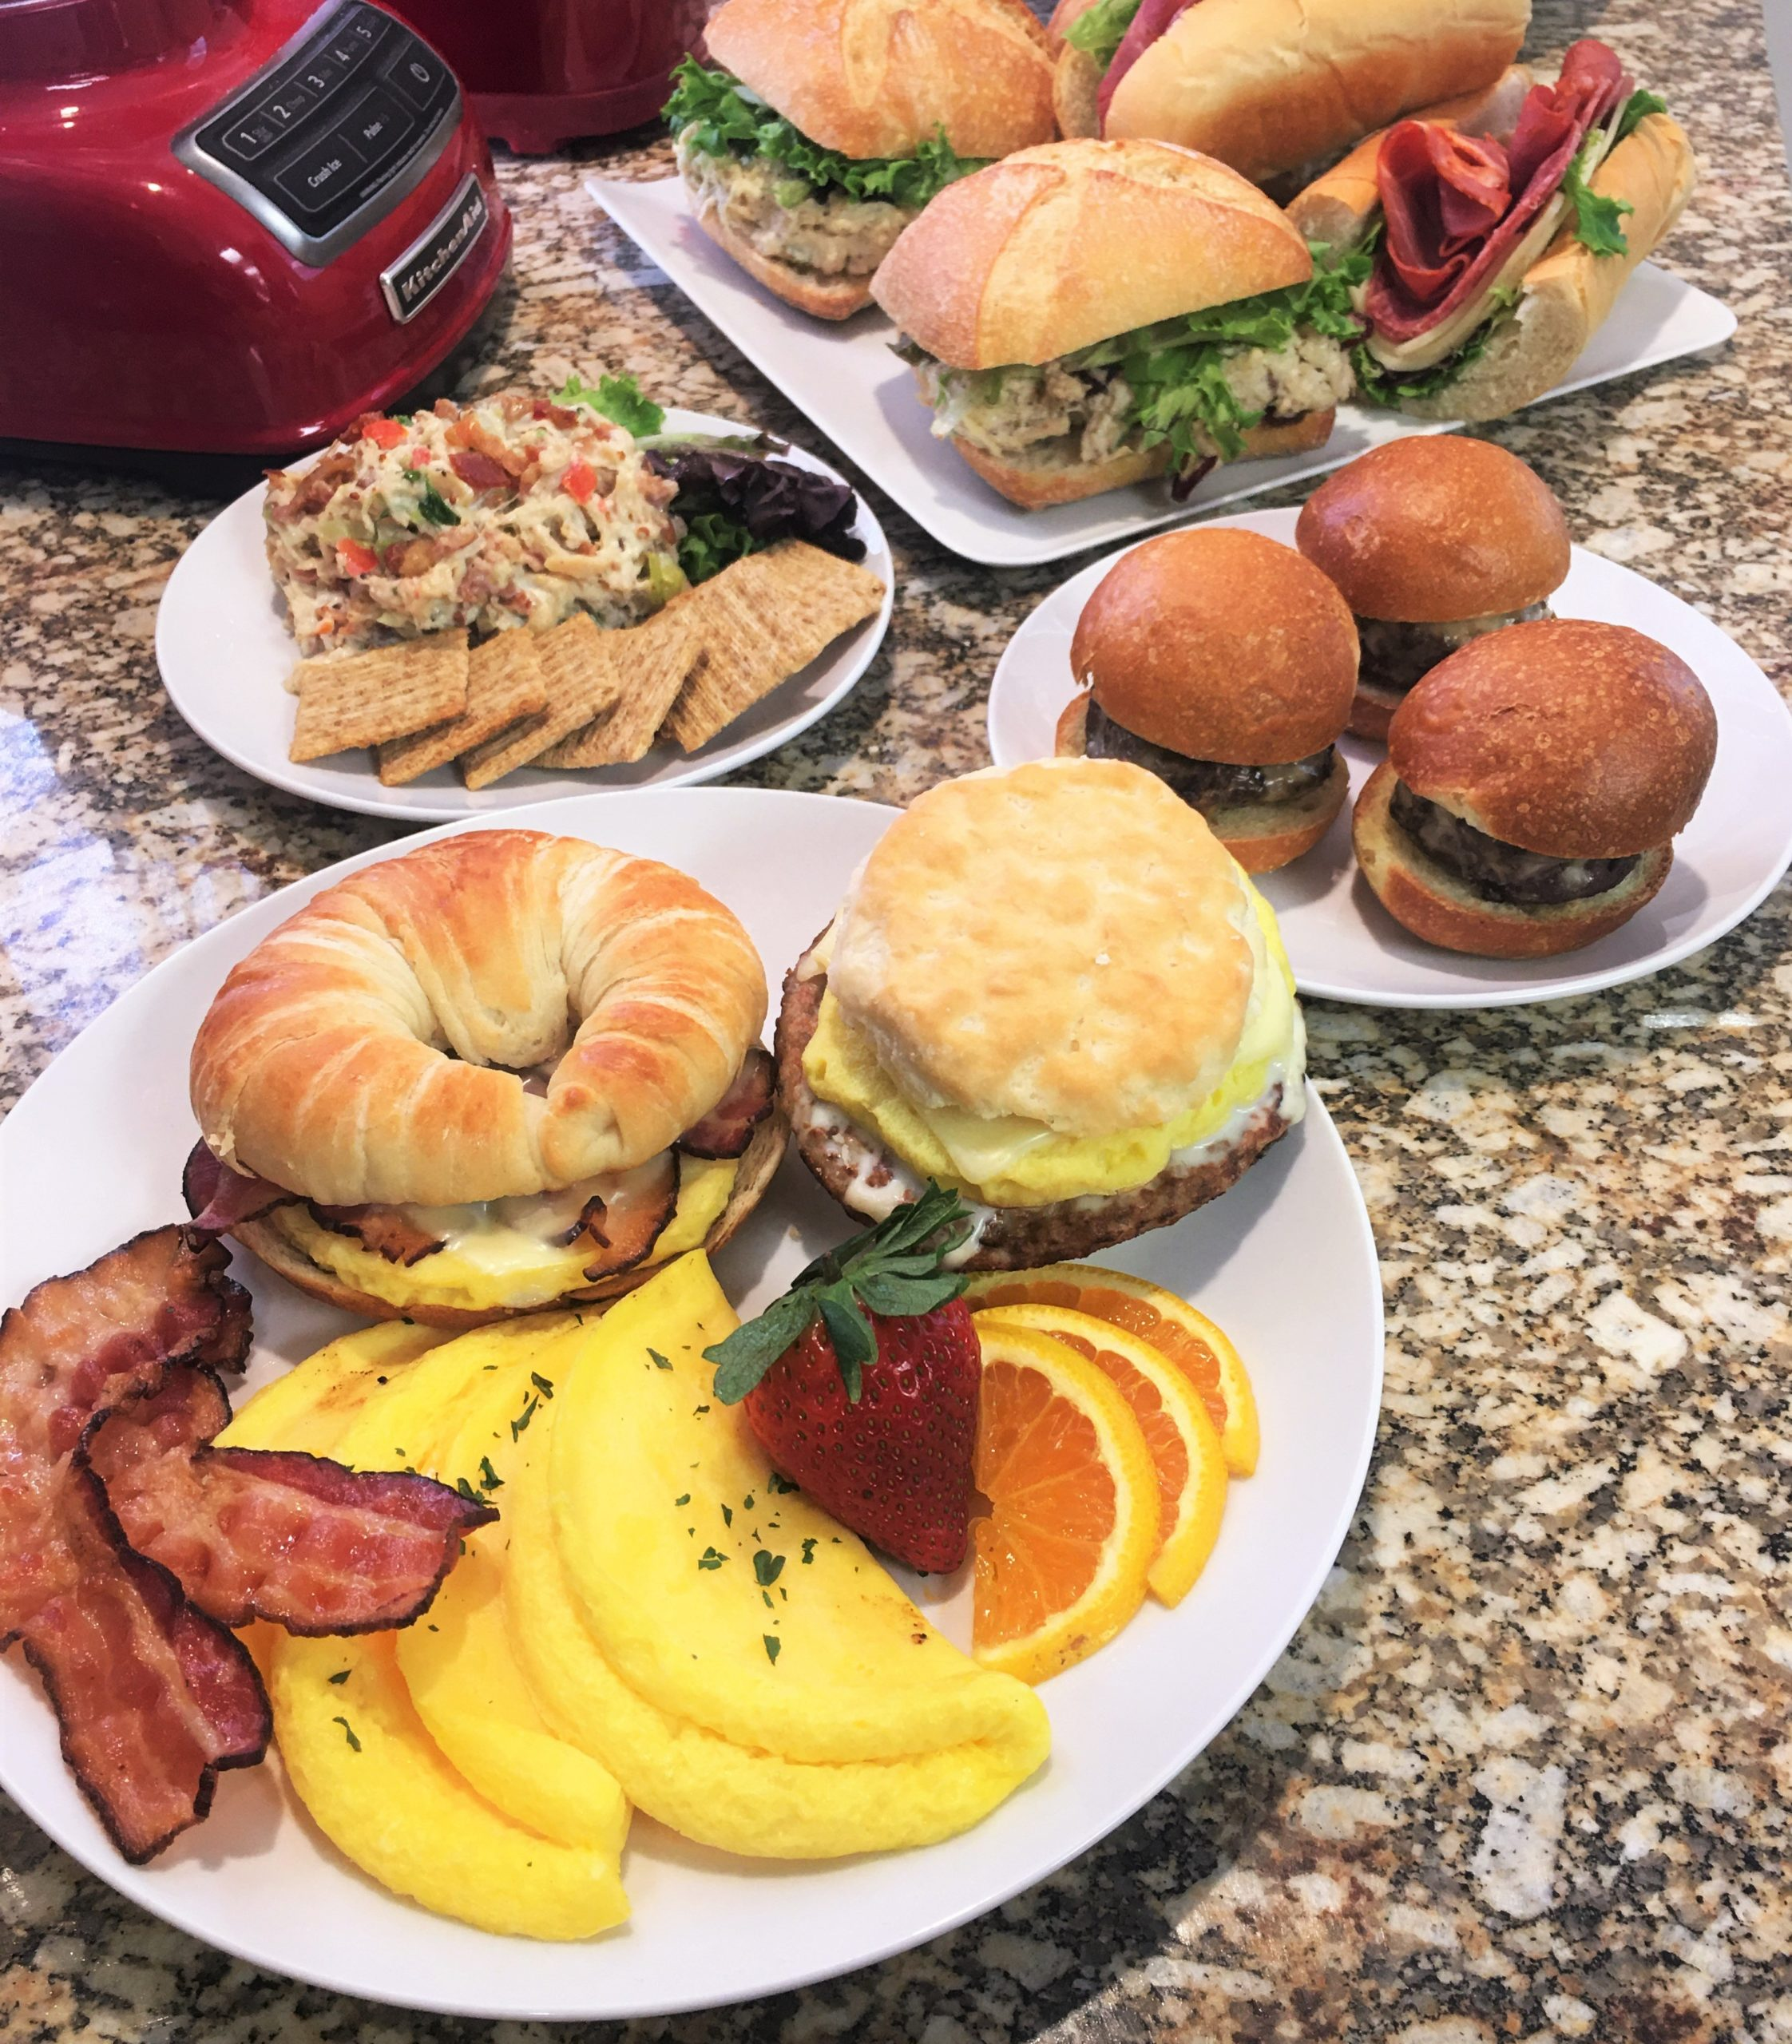 assortment of freshly prepared foods for breakfast, lunch, and dinner takeout